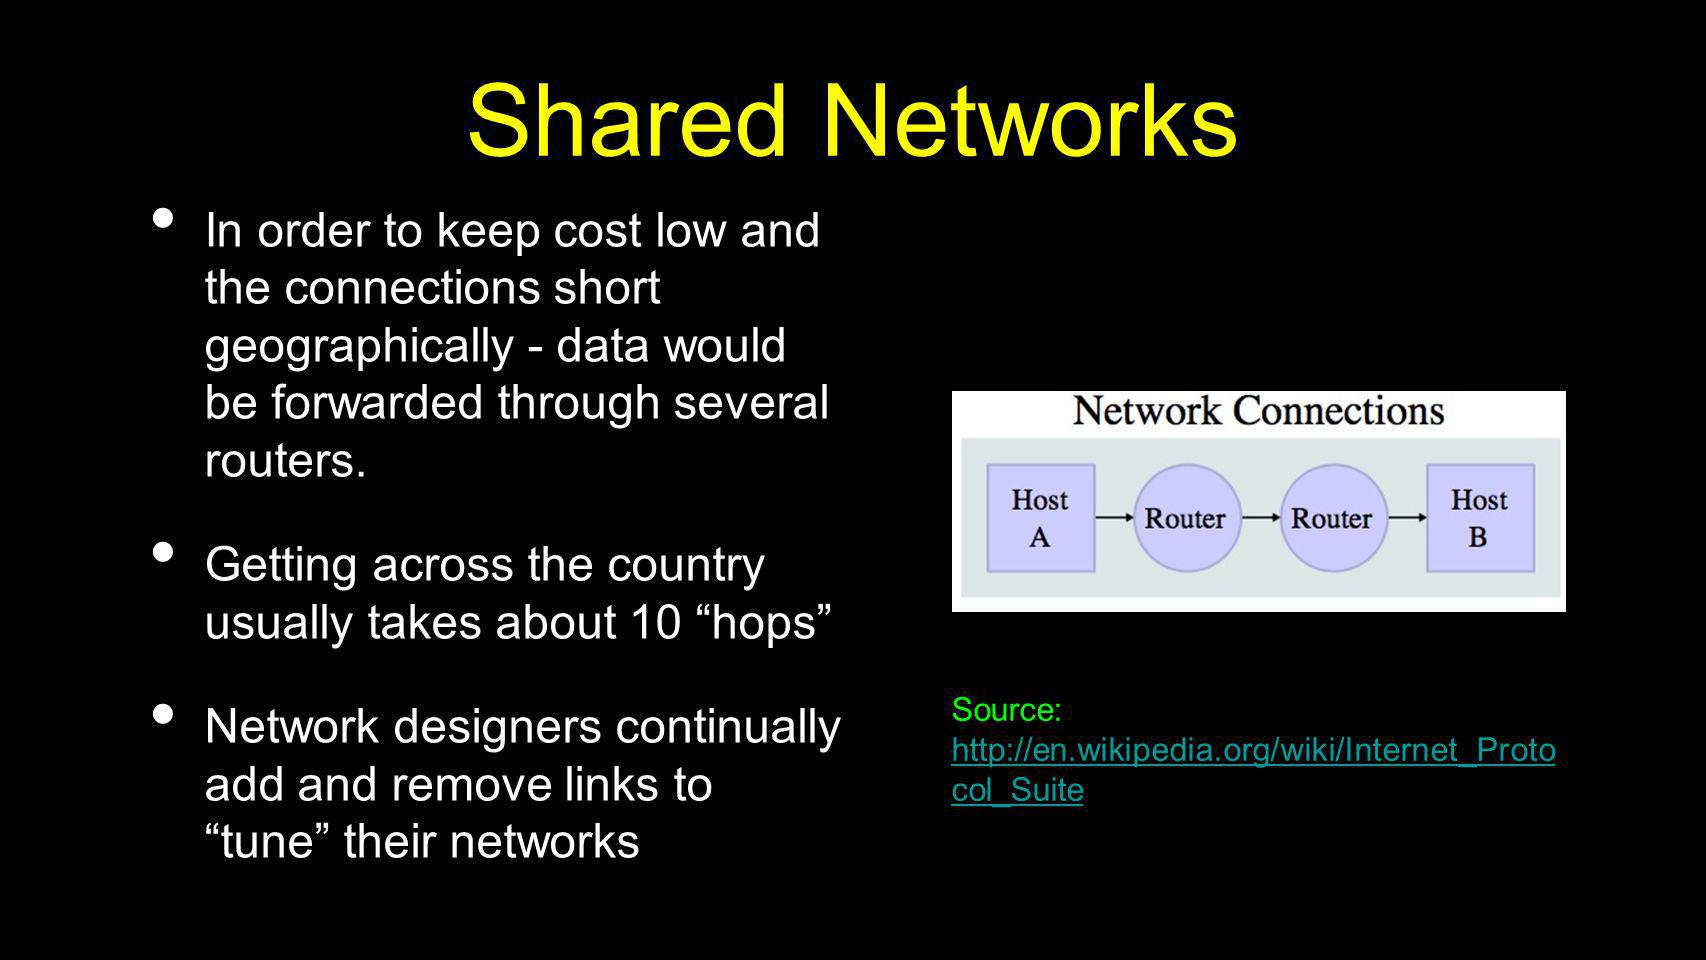 Shared Networks In order to keep cost low and the connections short geographically - data would be forwarded through several routers.